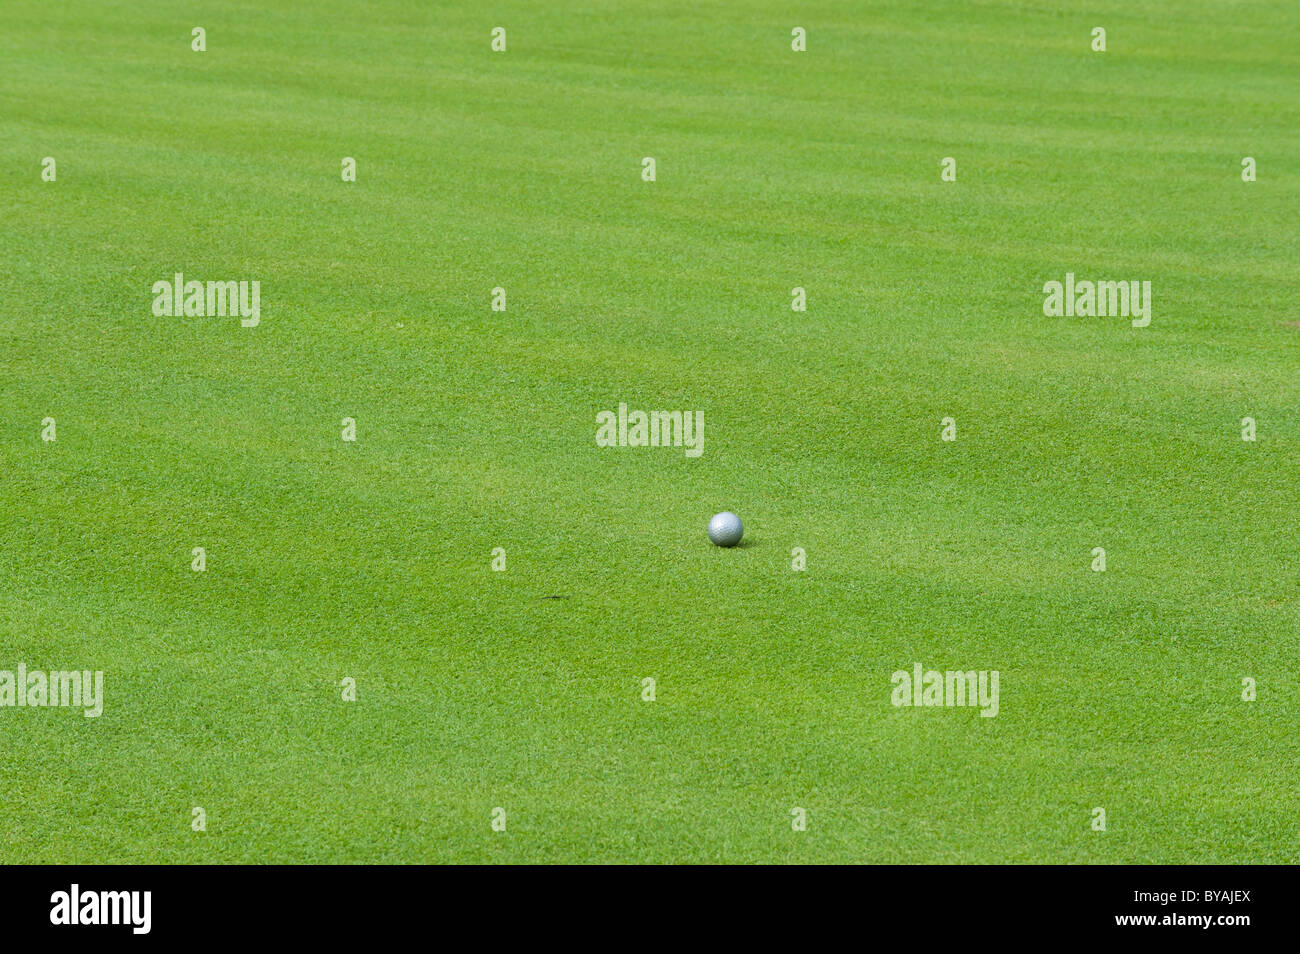 Silver golf ball on the green - Stock Image